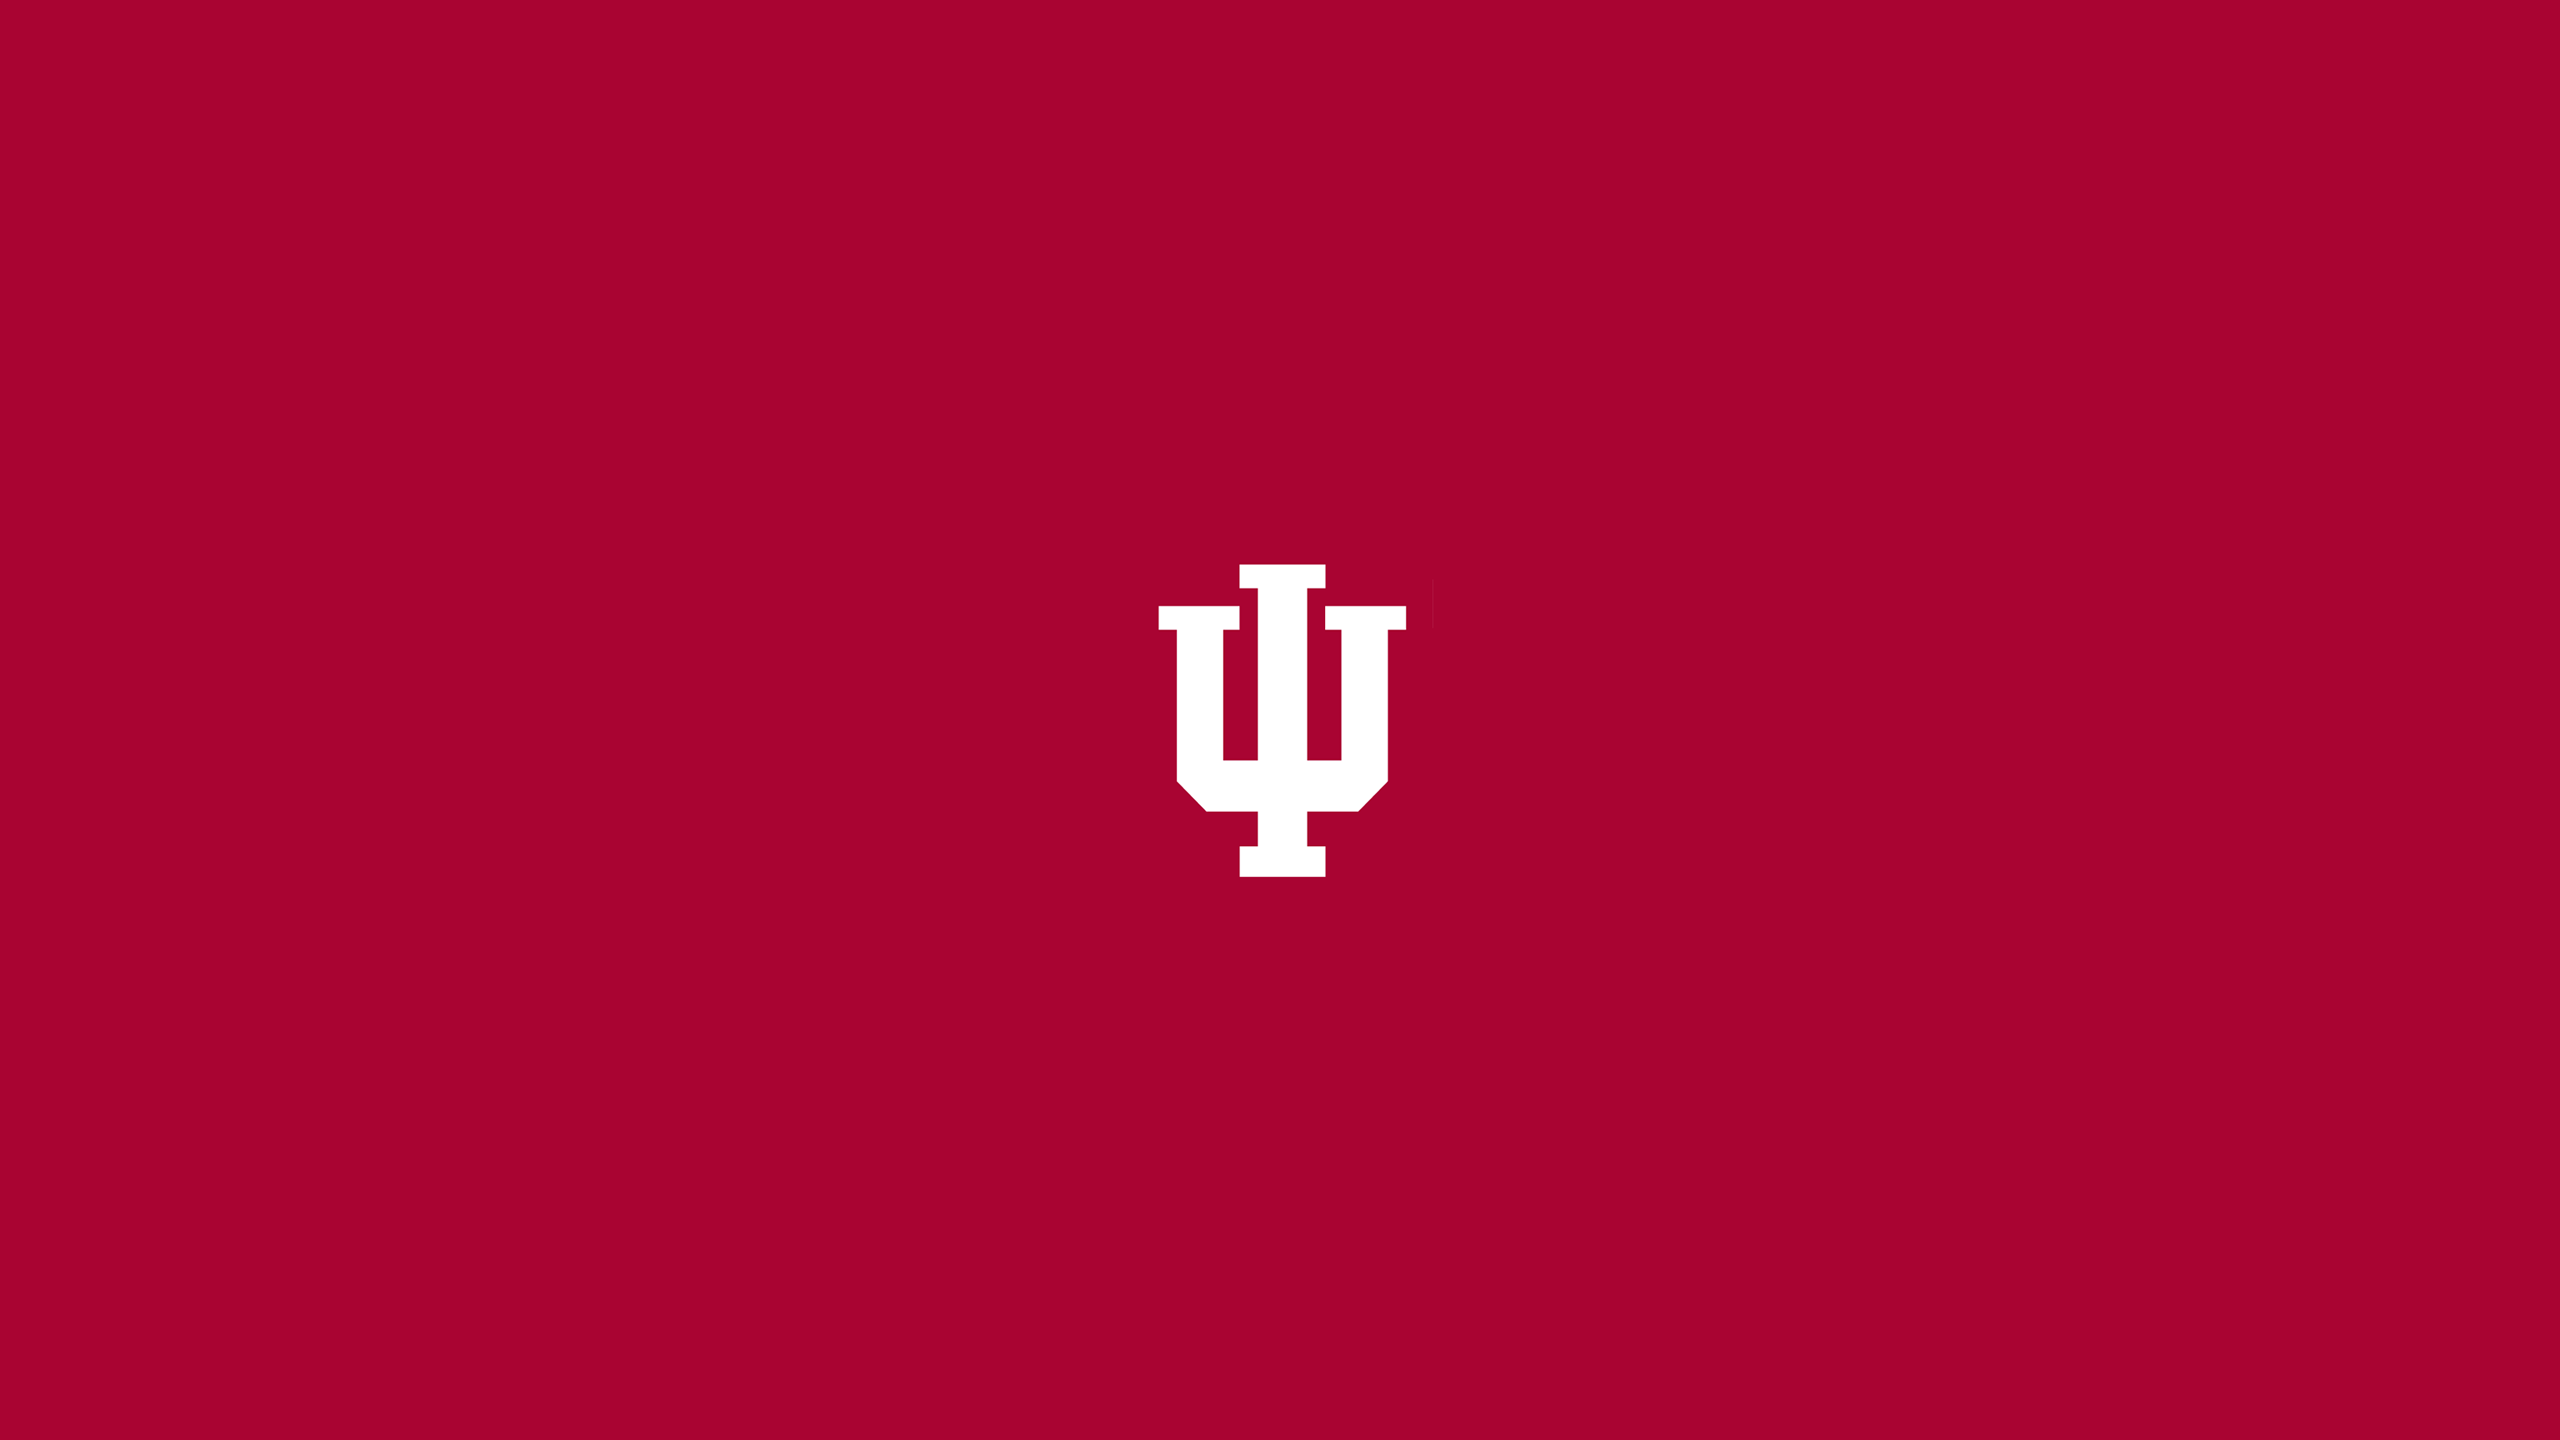 Indiana University Desktop Wallpaper